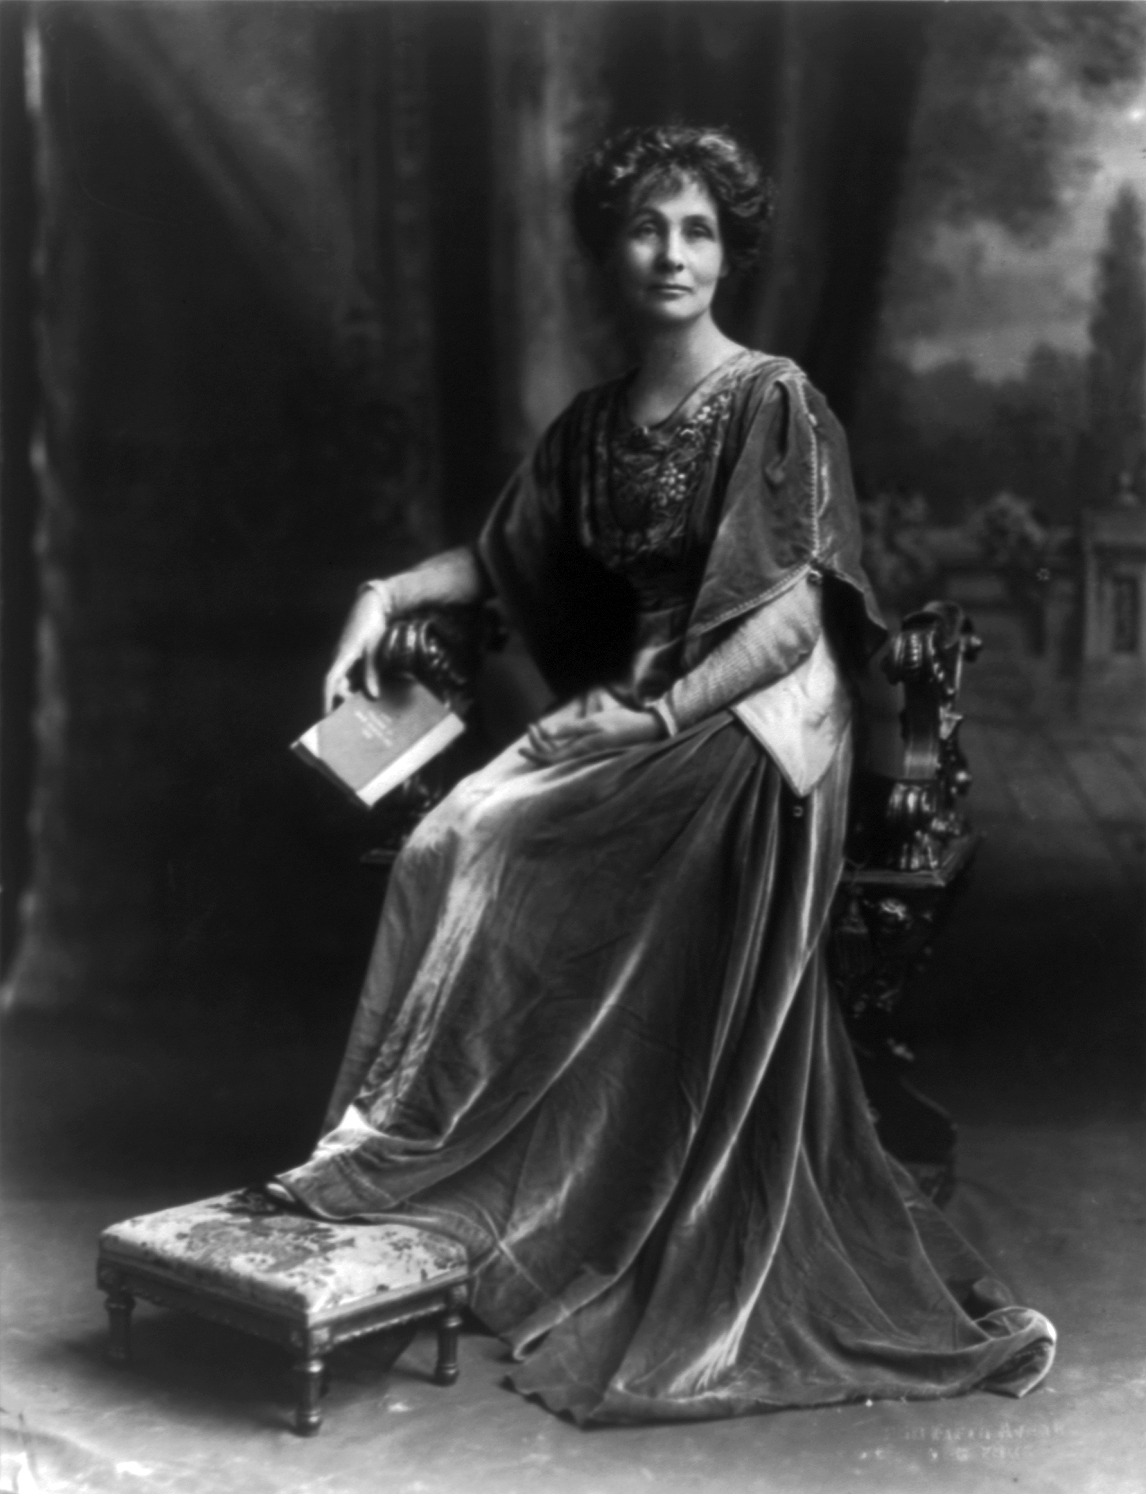 emmeline pankhurst Emmeline pankhurst was the best known of the leaders of the more militant wing of the women's suffrage movement in great britain in the early 20th century.